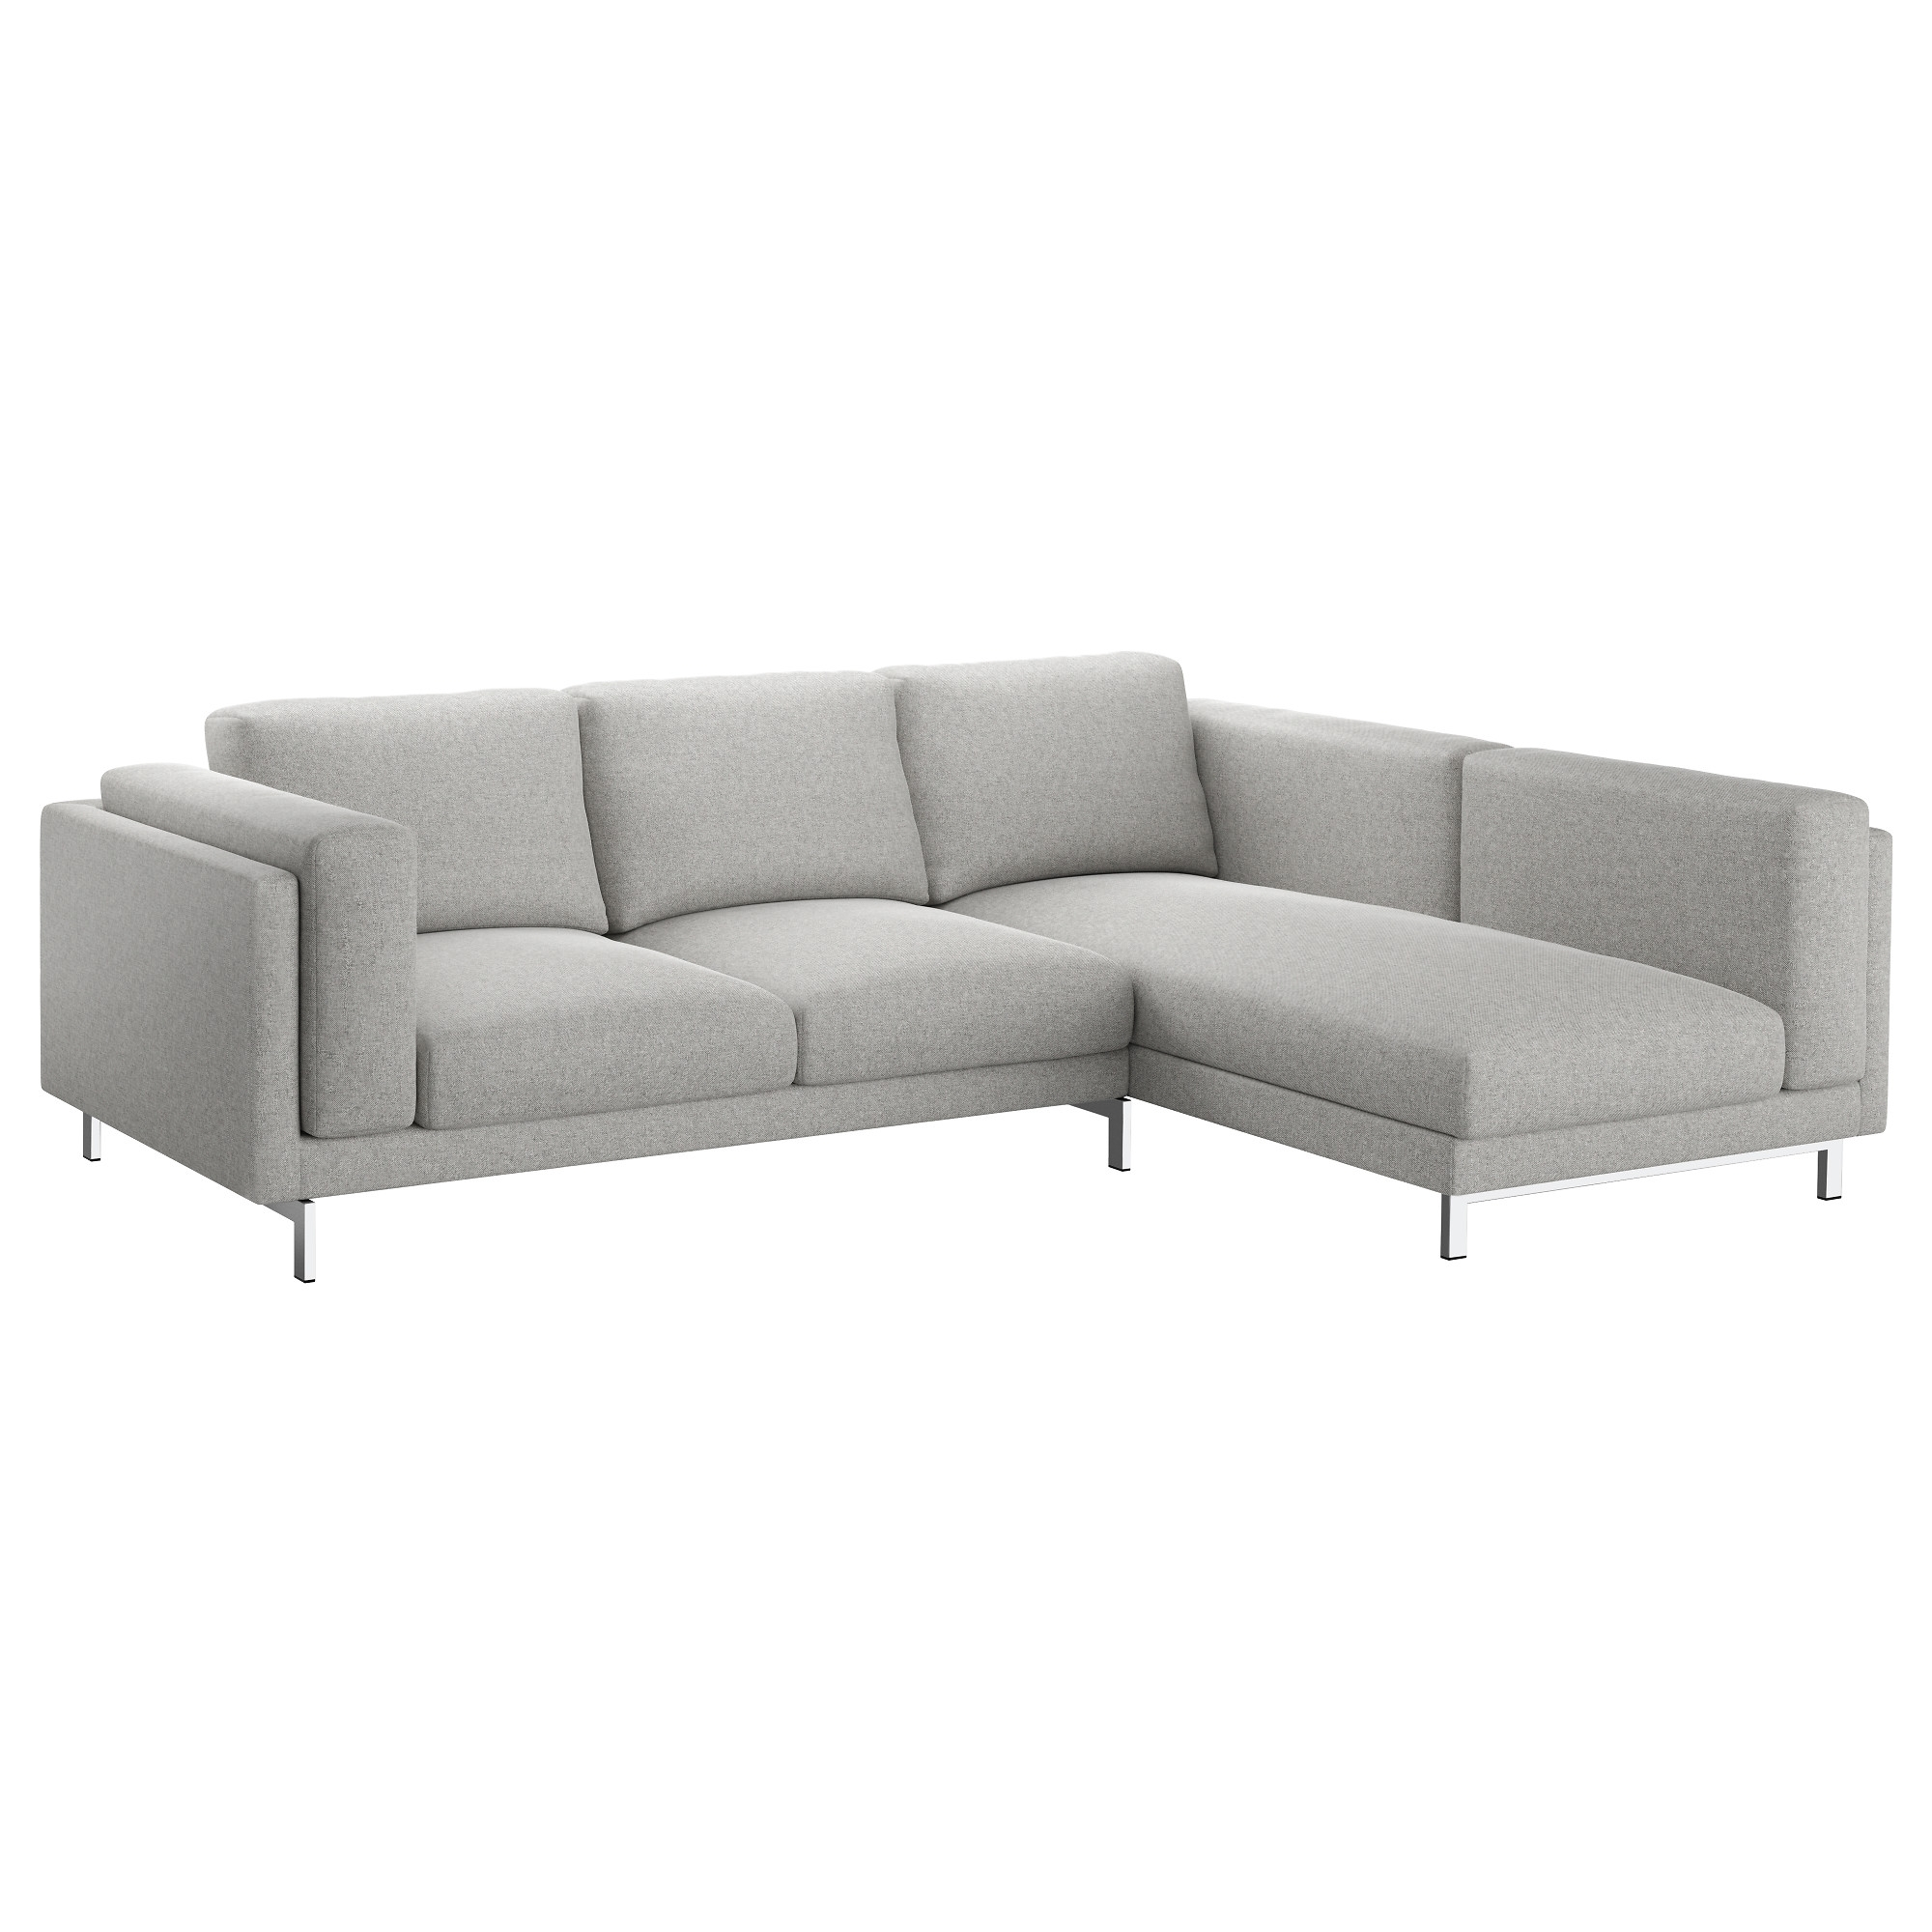 2018 Nockeby Sofa U2013 With Chaise, Left/tallmyra White/black, Chrome  Throughout